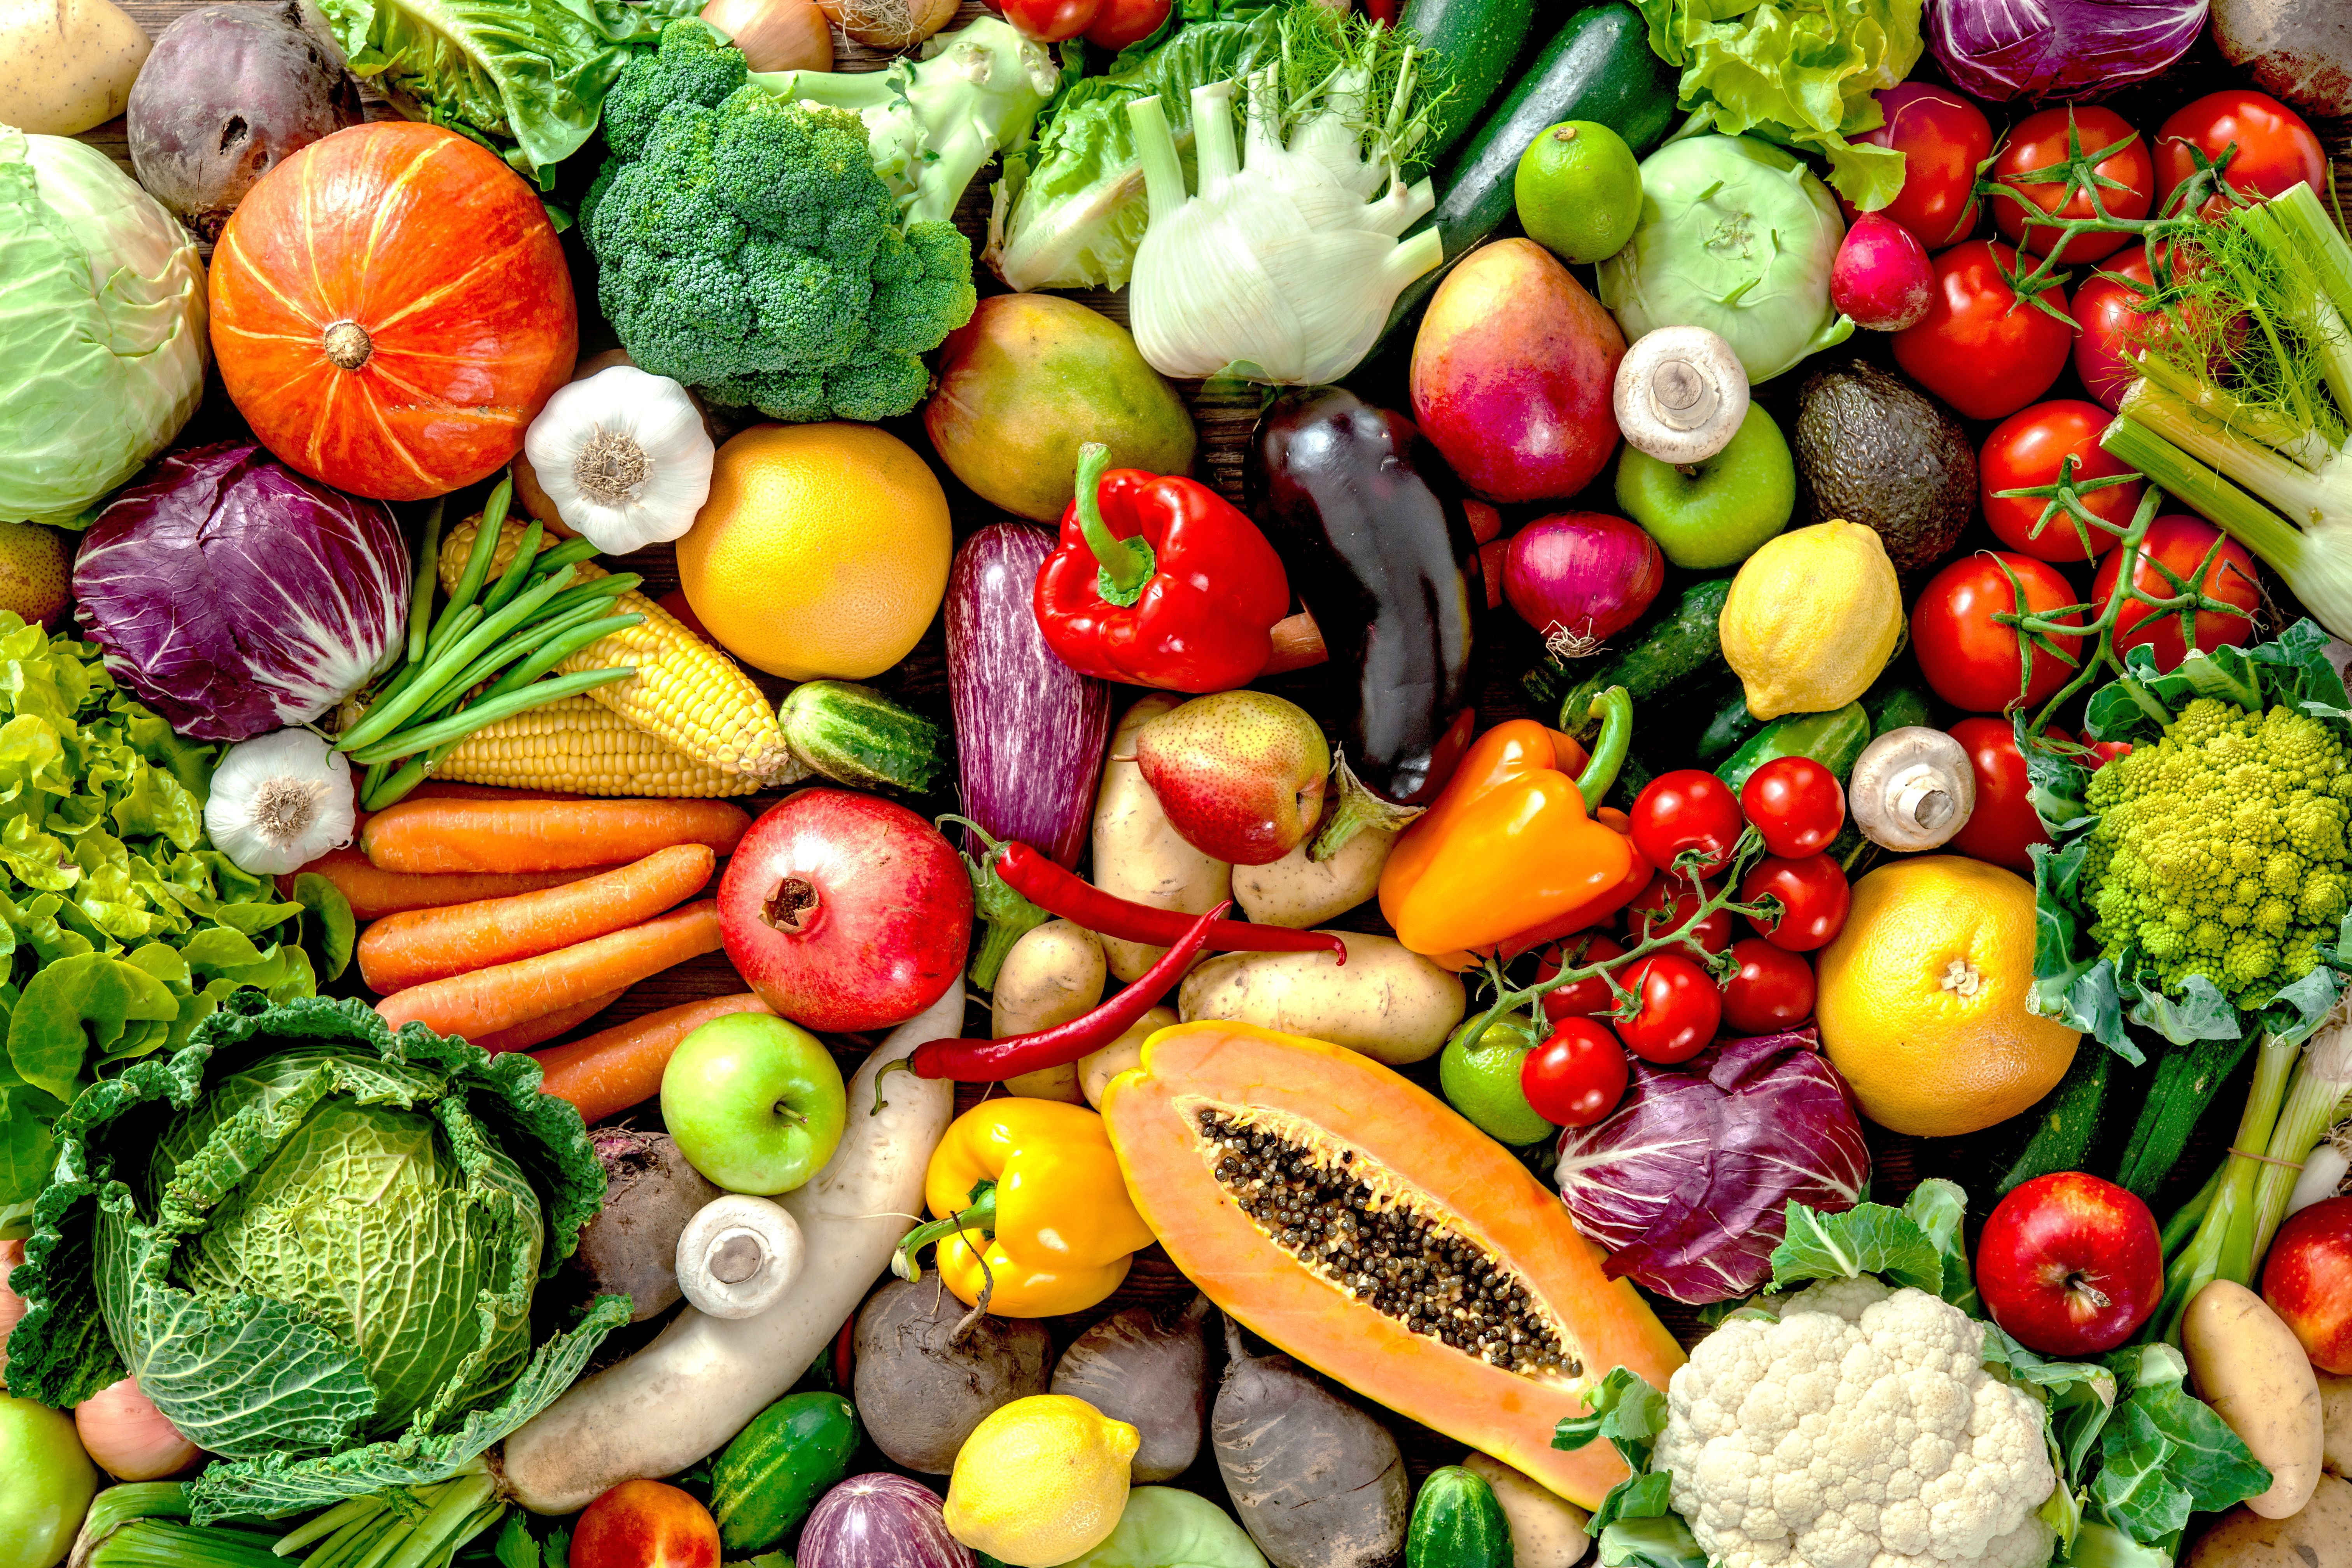 Research study on food choice in rural communities